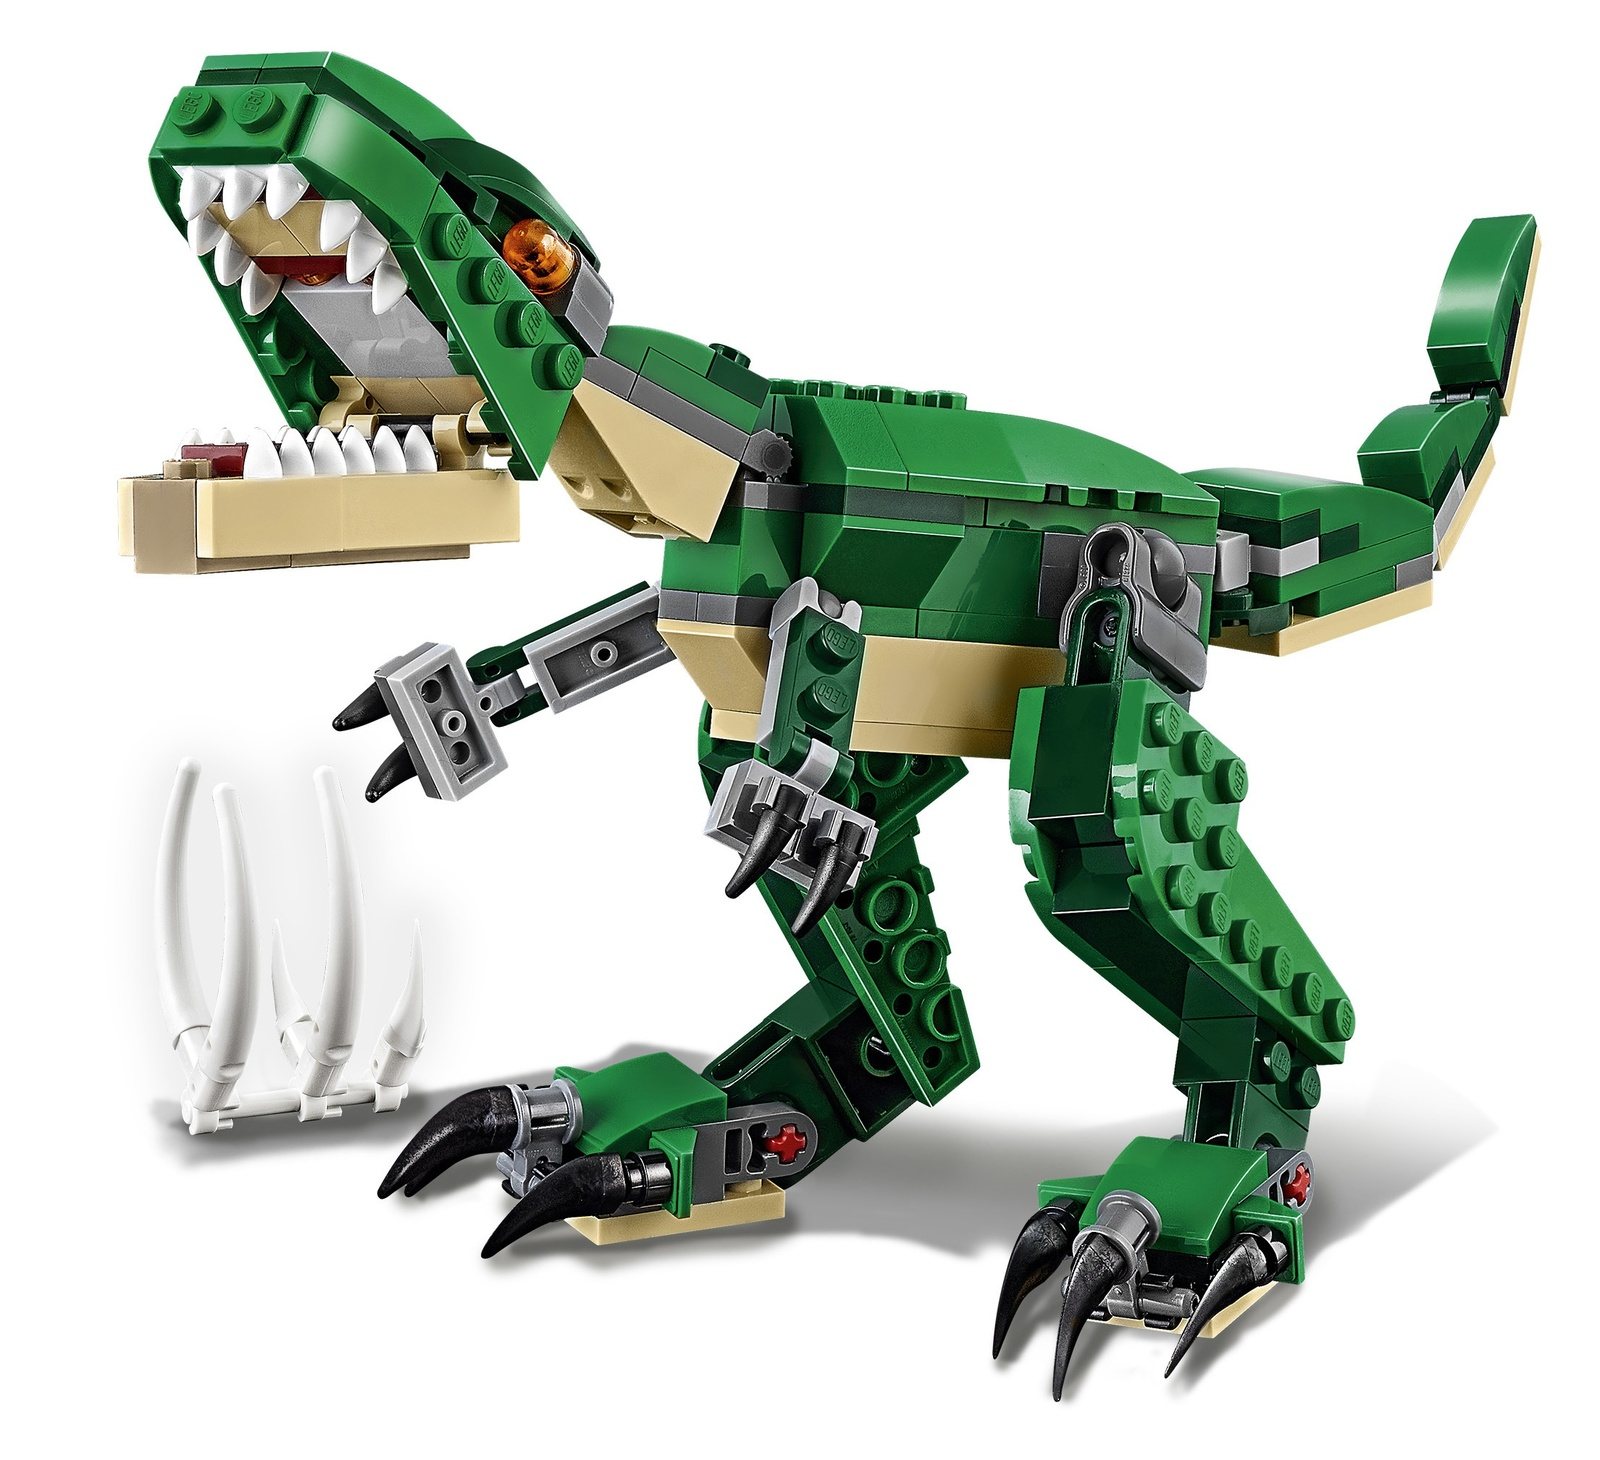 FAST /& FREE SHIPPING LEGO Creator Mighty Dinosaurs toy 174 pcs